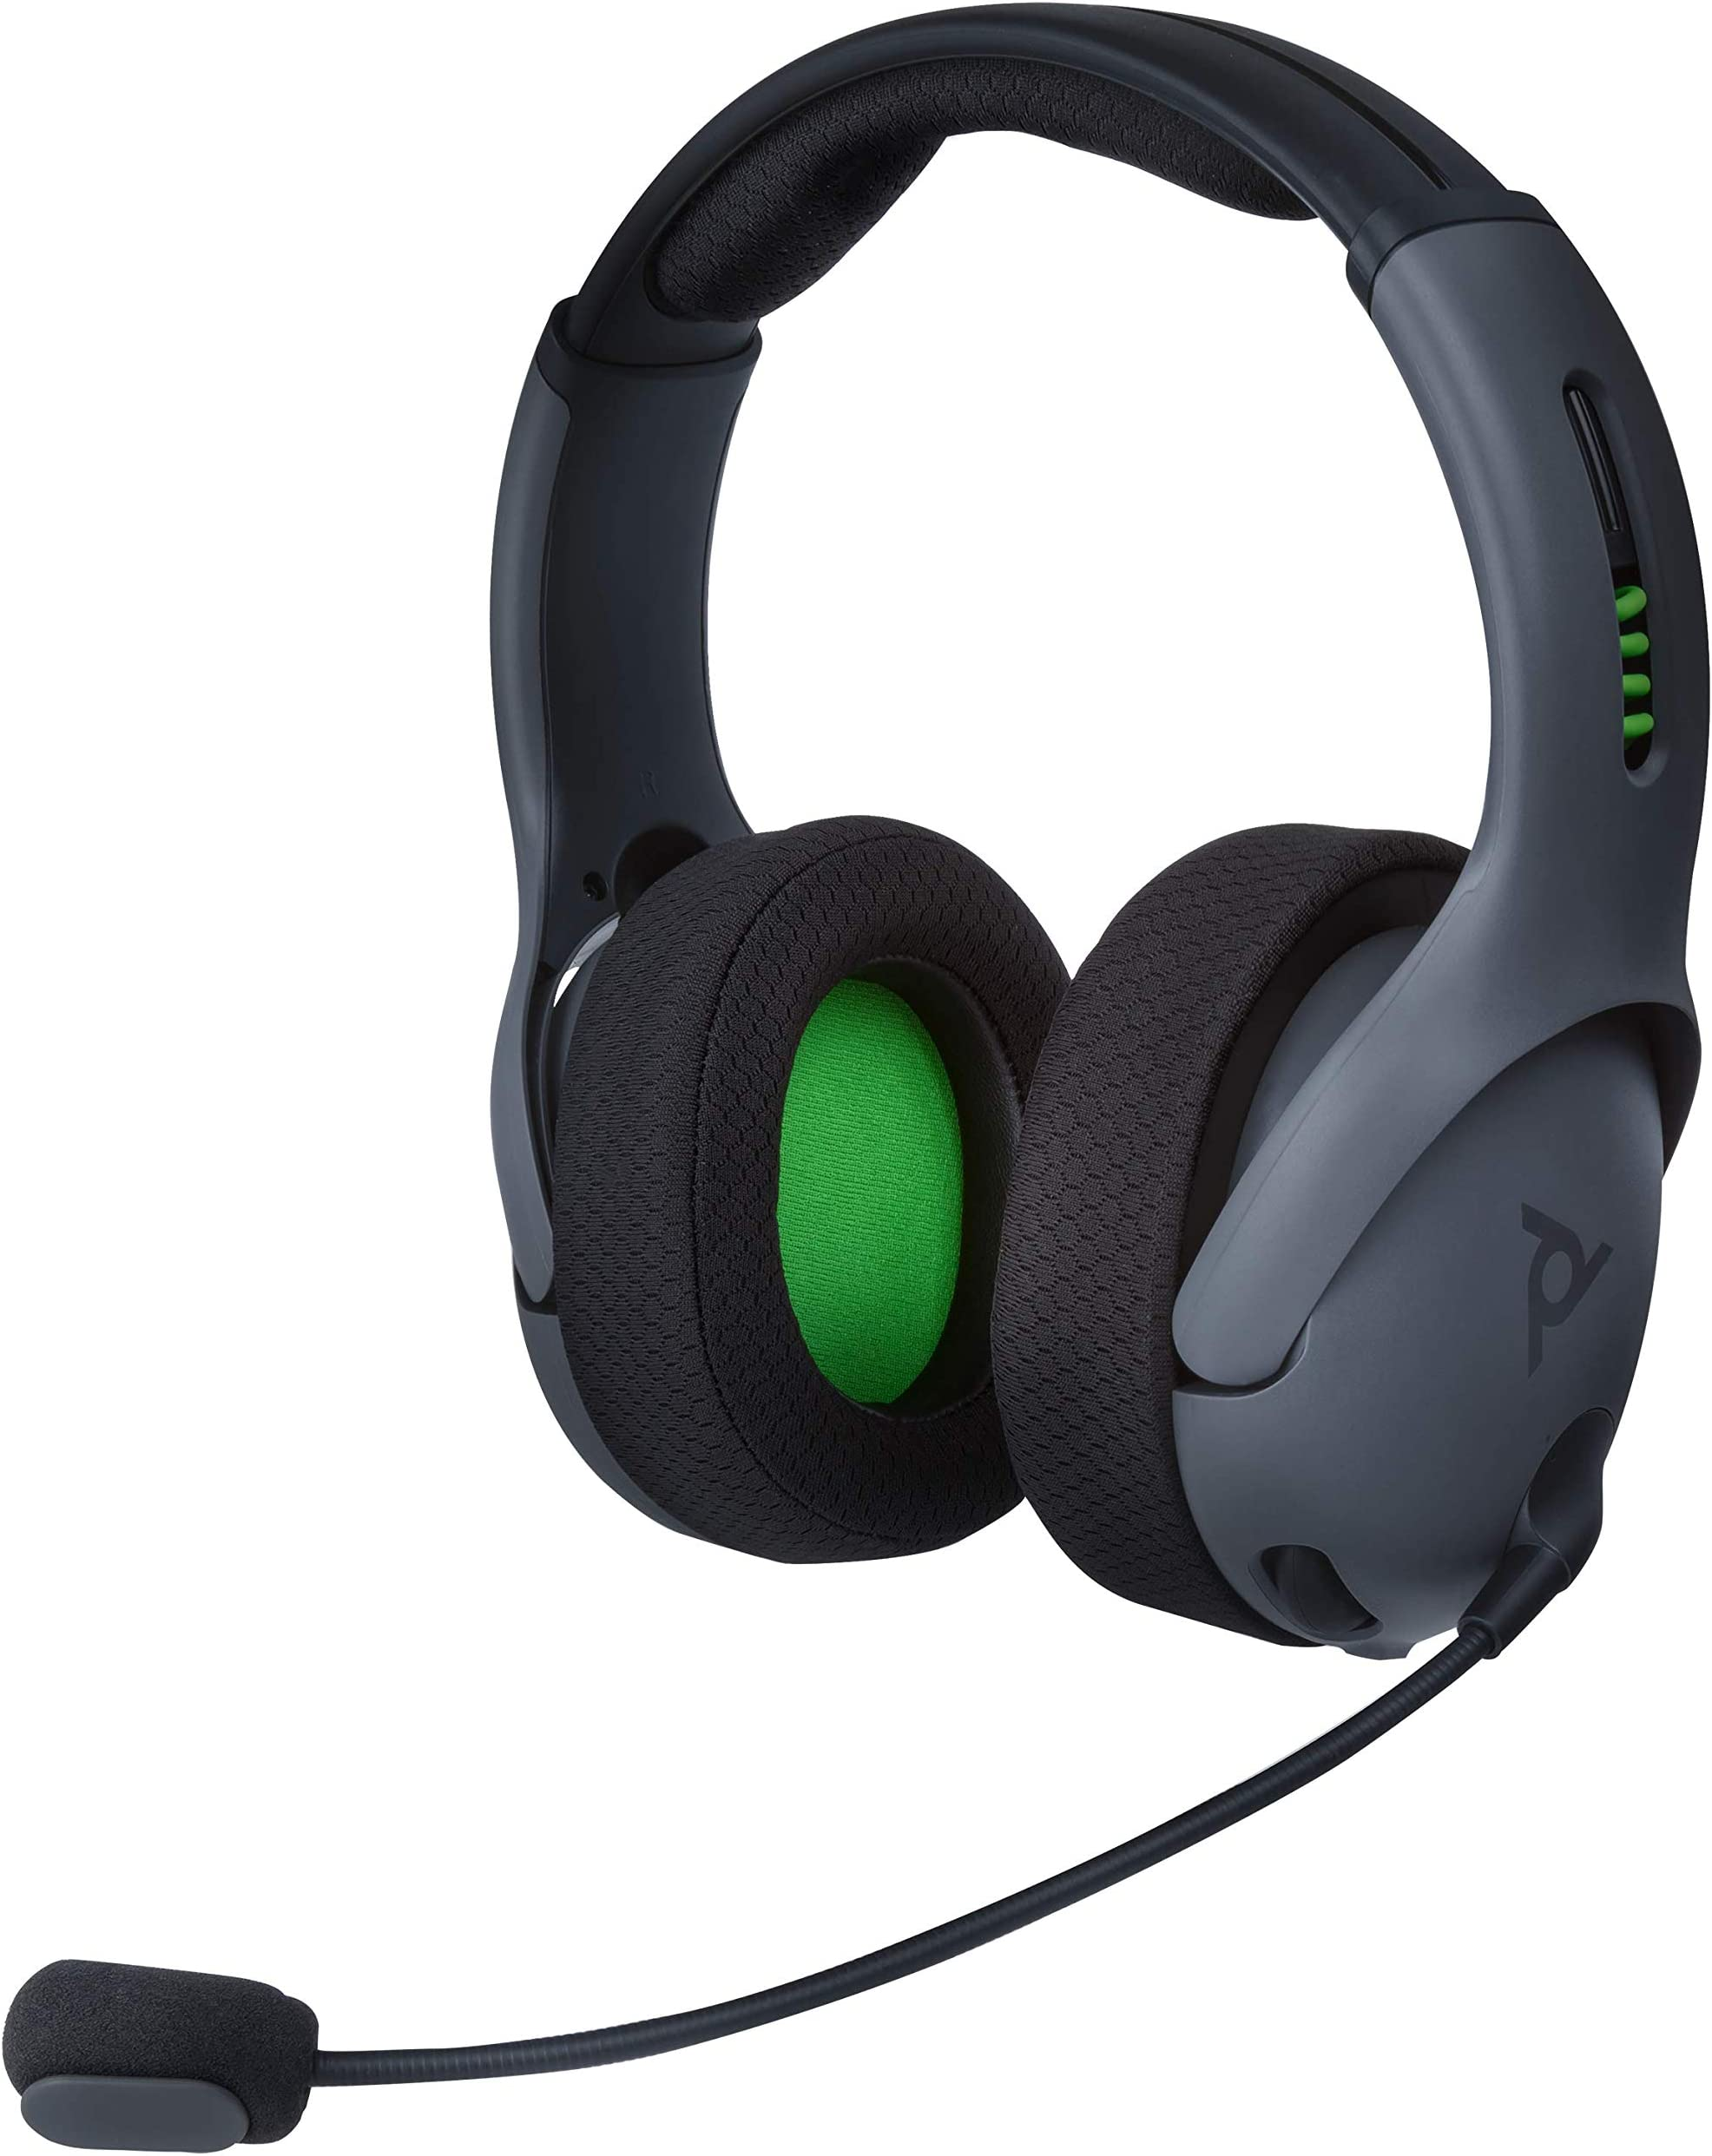 bd042e658a5 Amazon.com: PDP Xbox One LVL50 Wireless Stereo Gaming Headset for ...